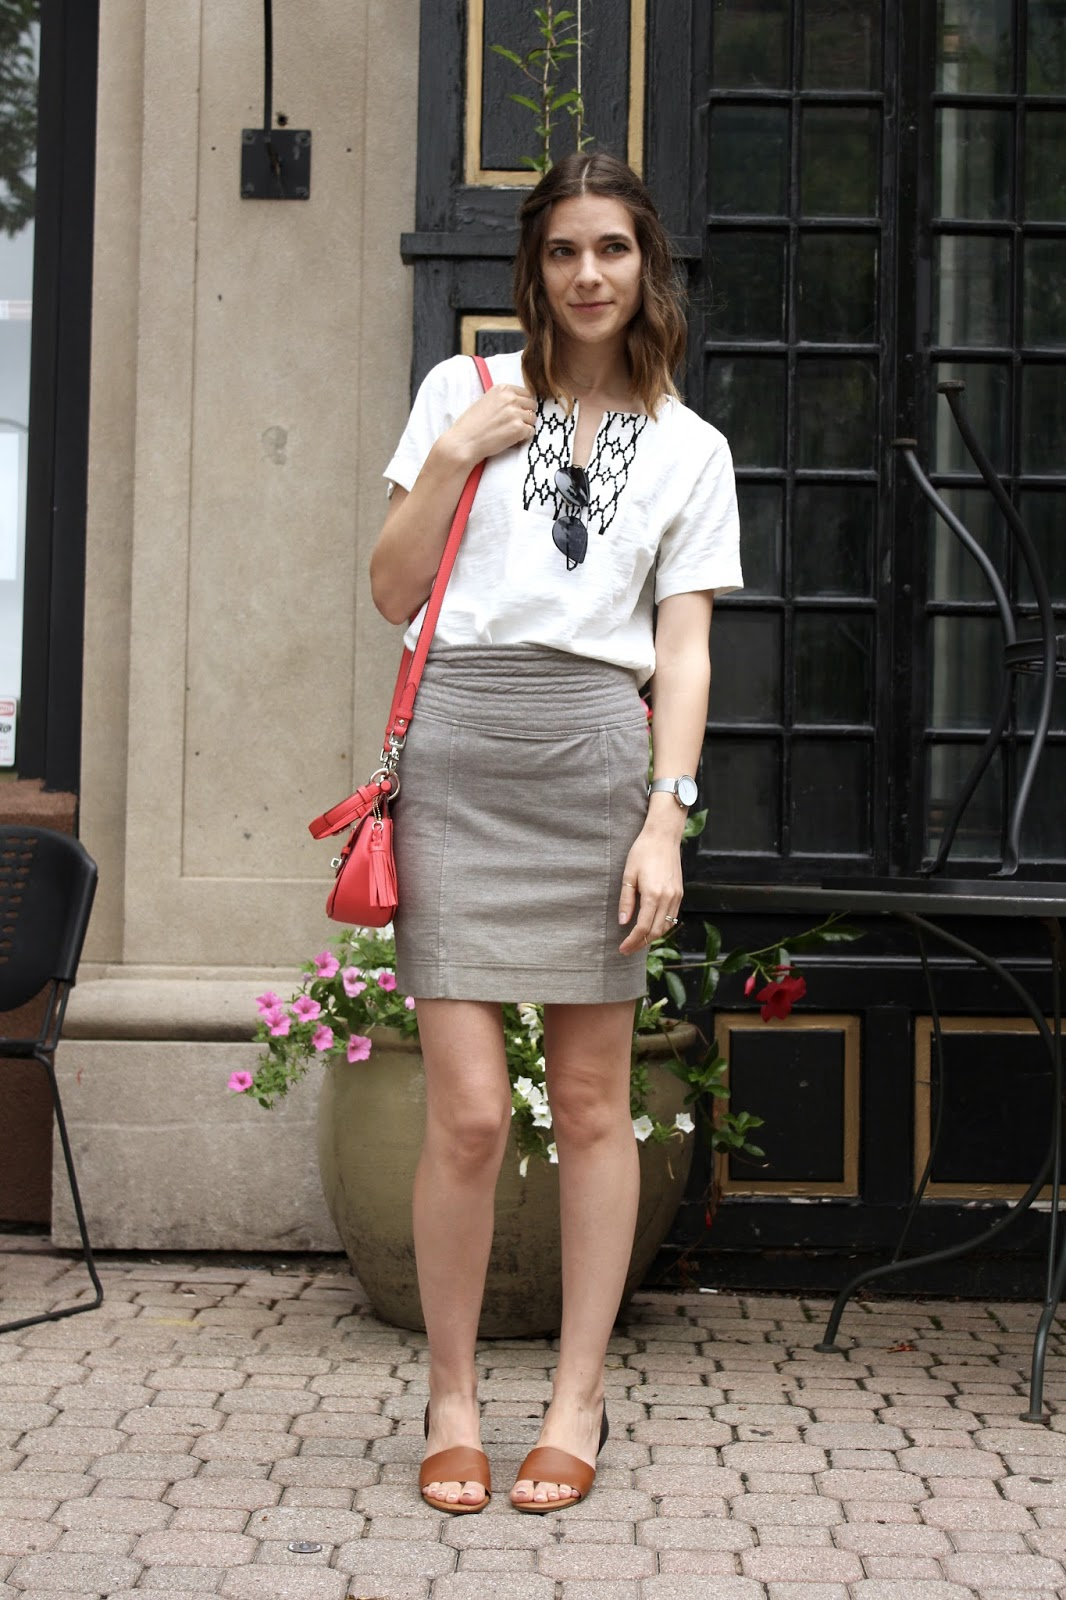 white t-shirt paired with a high waisted gray pencil skirt